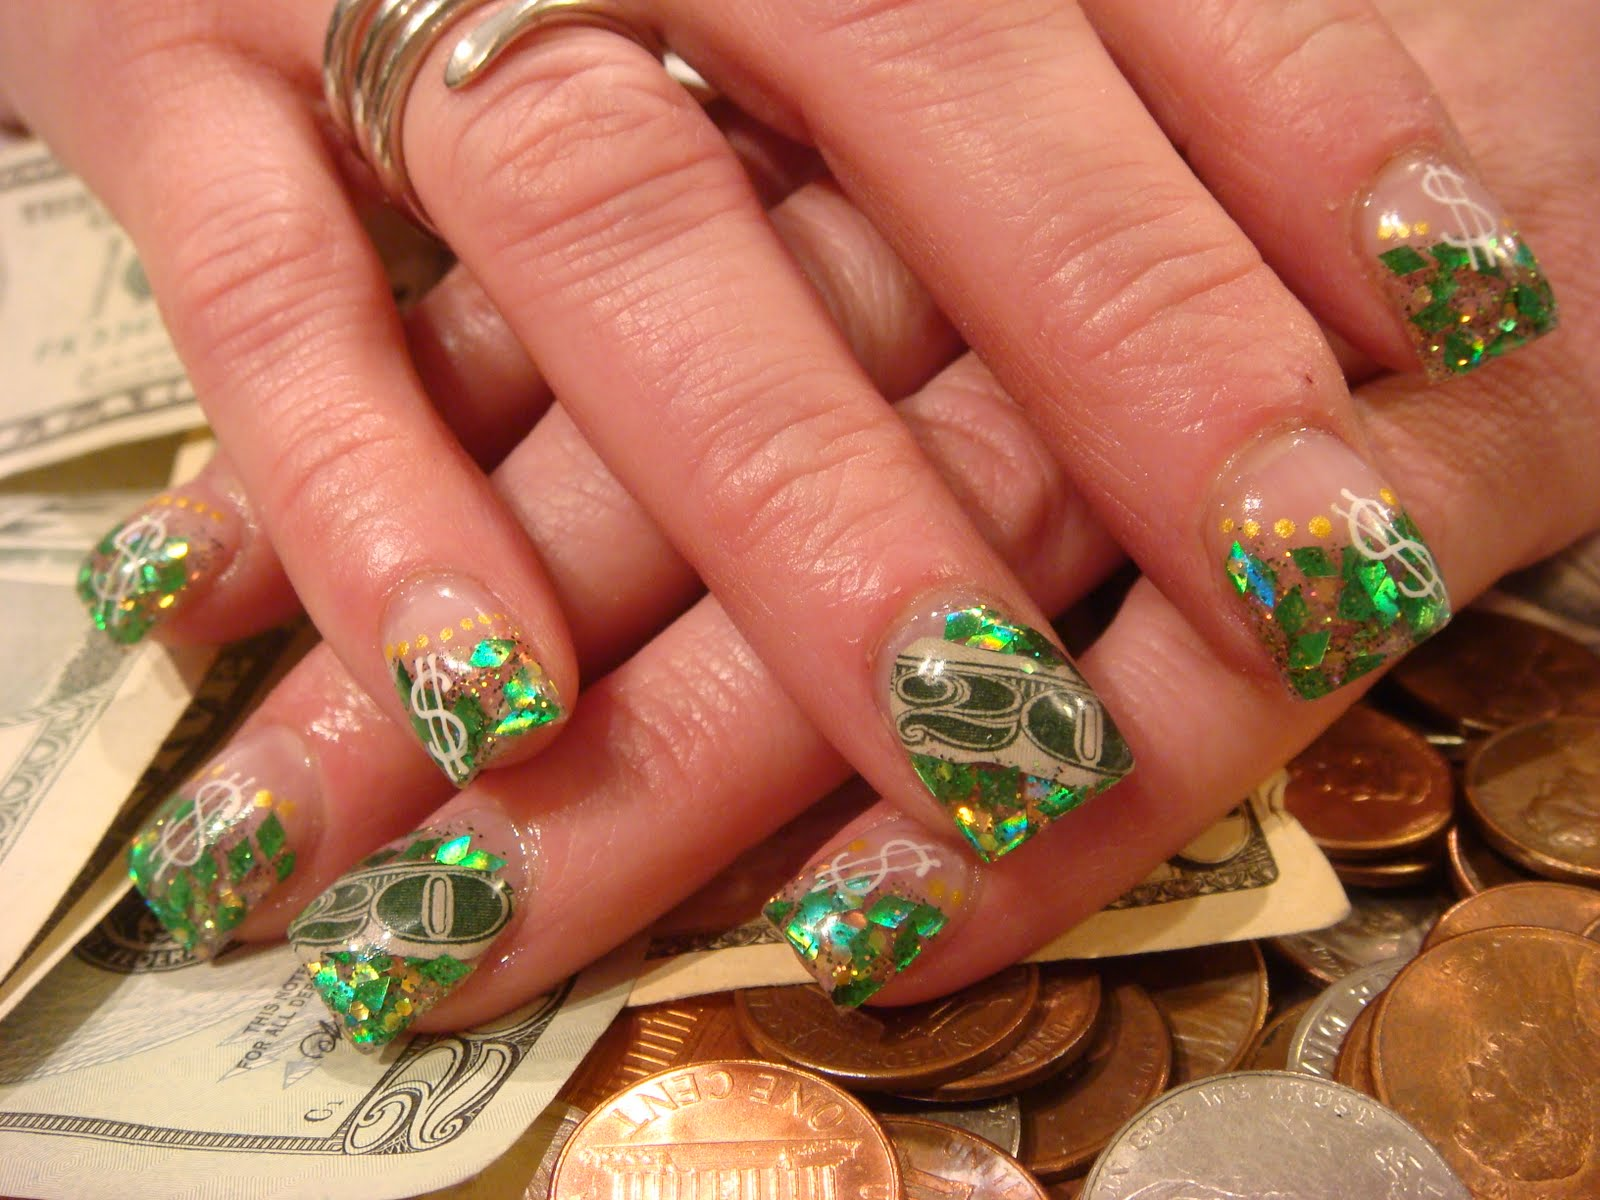 Nail Art Is Becoming A Healthy Trend These Days One Quirky Blog